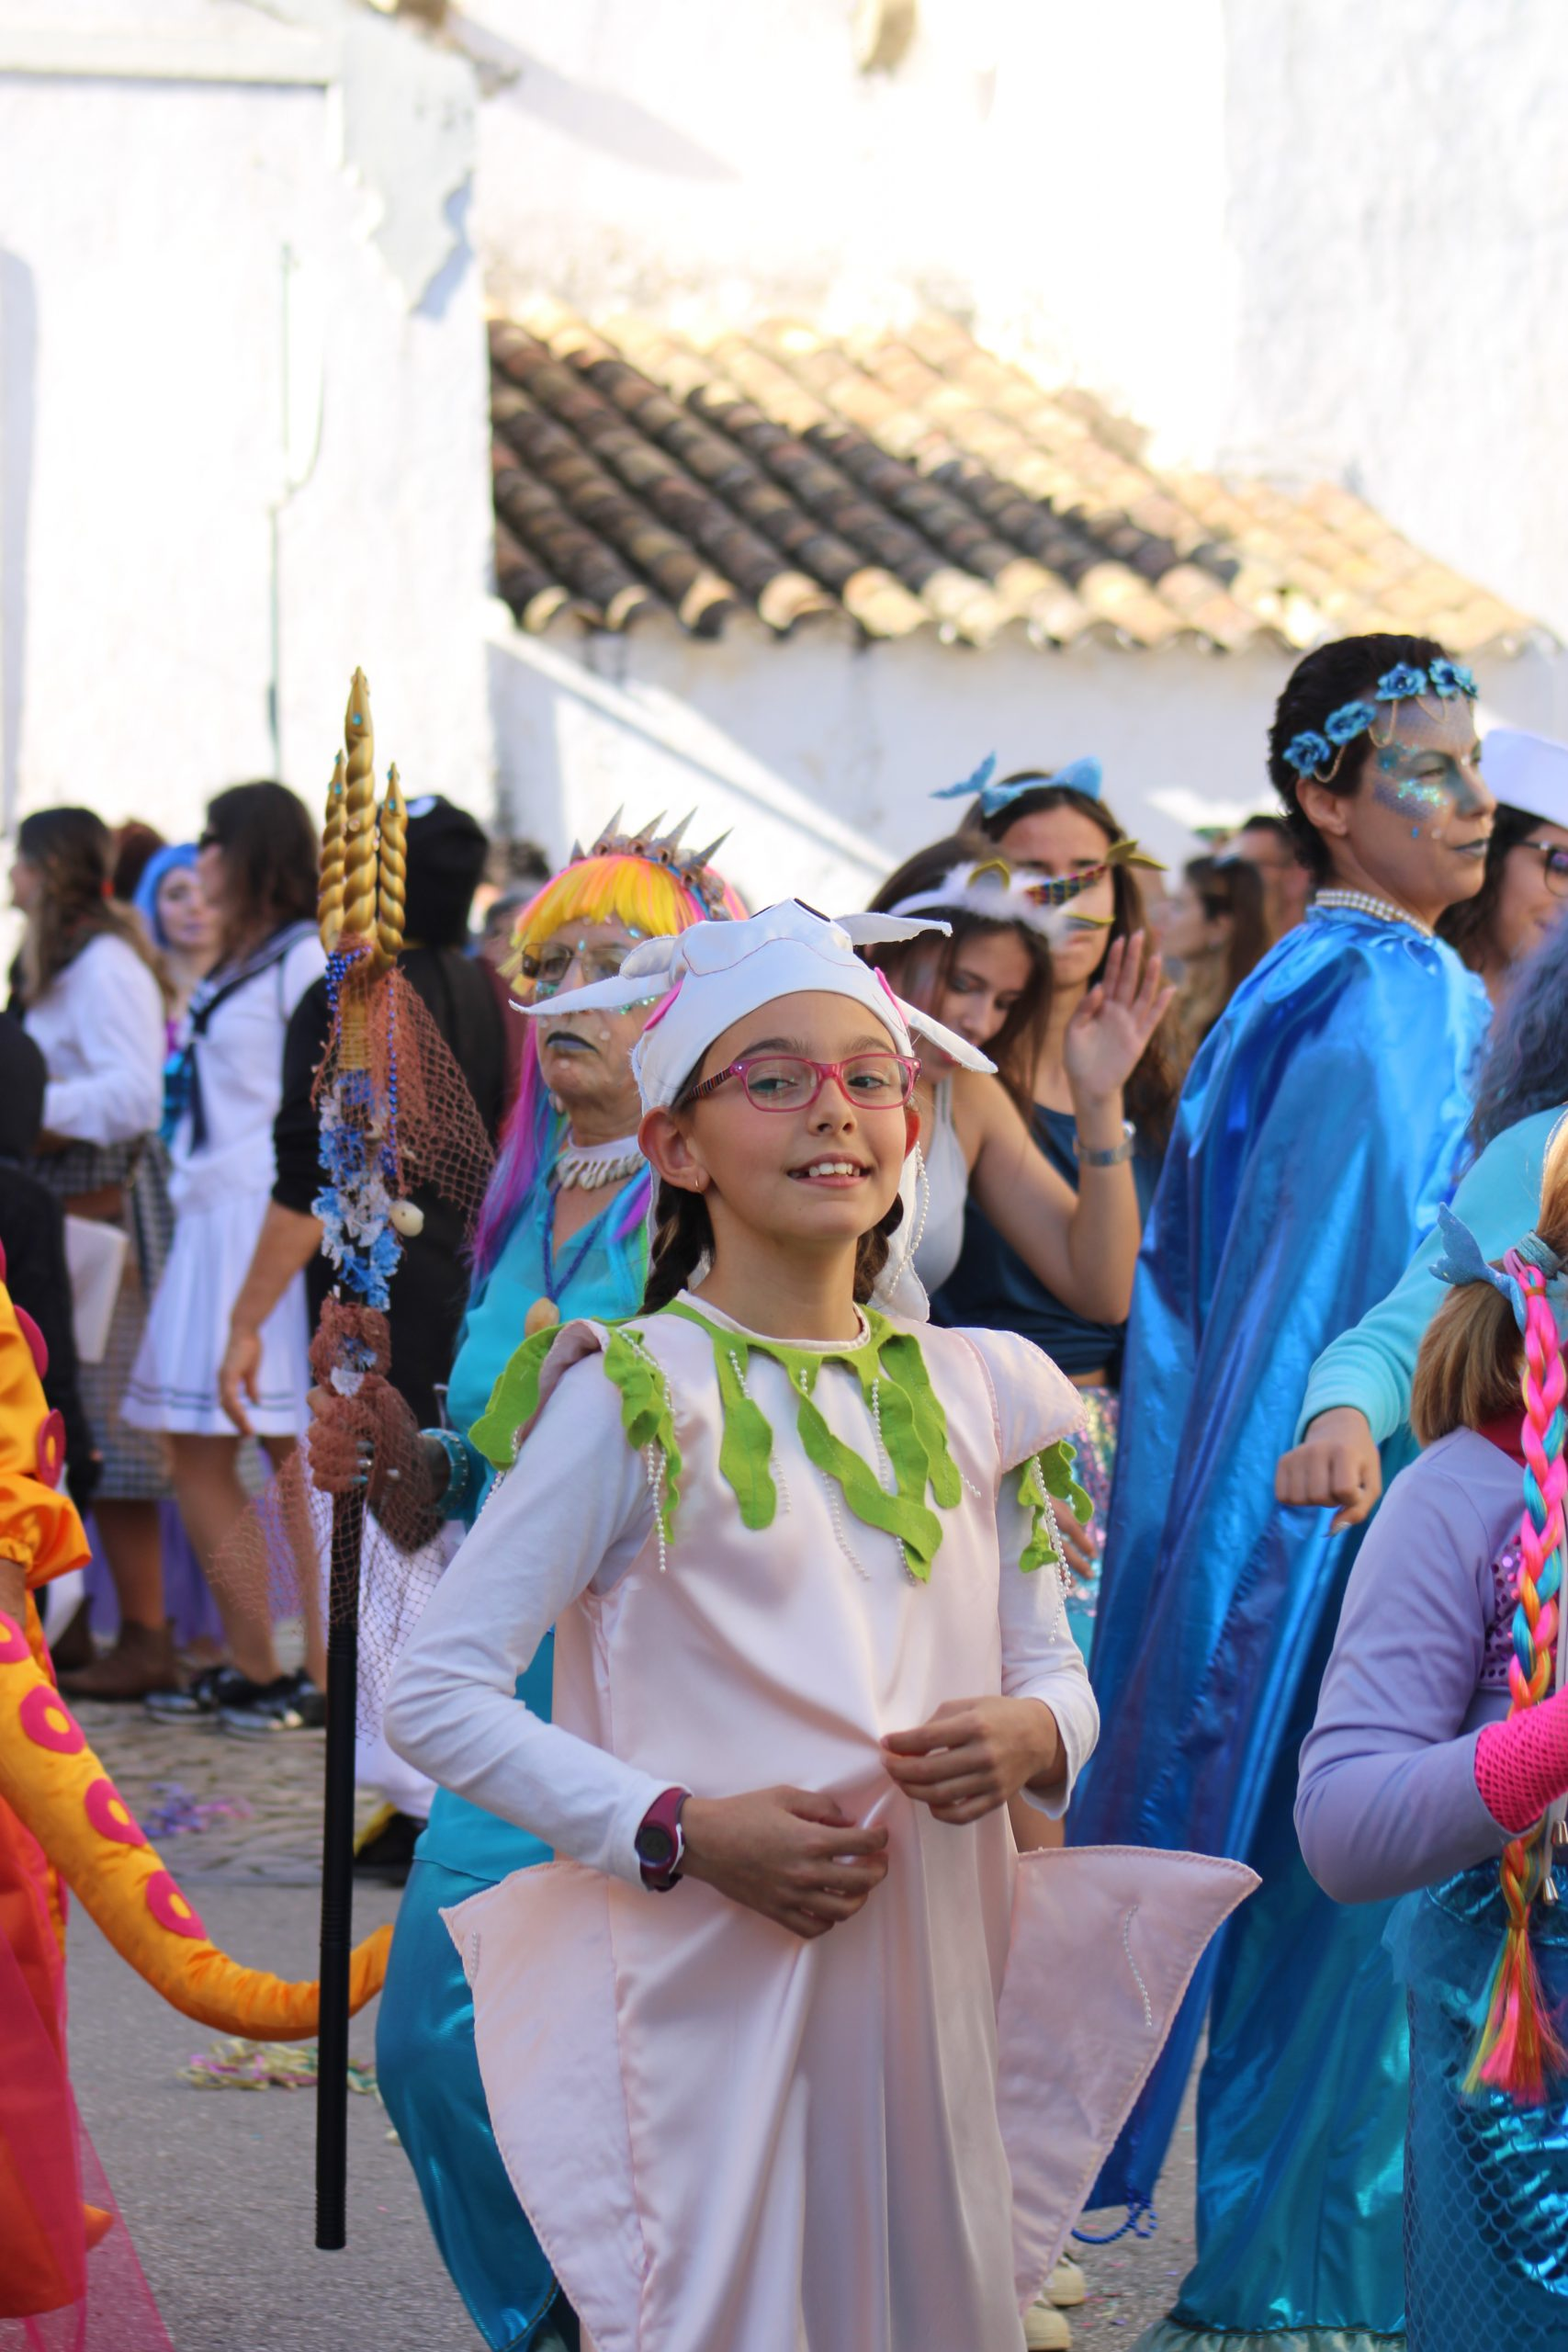 Сarnival on the south of Portugal: Moncarapacho village